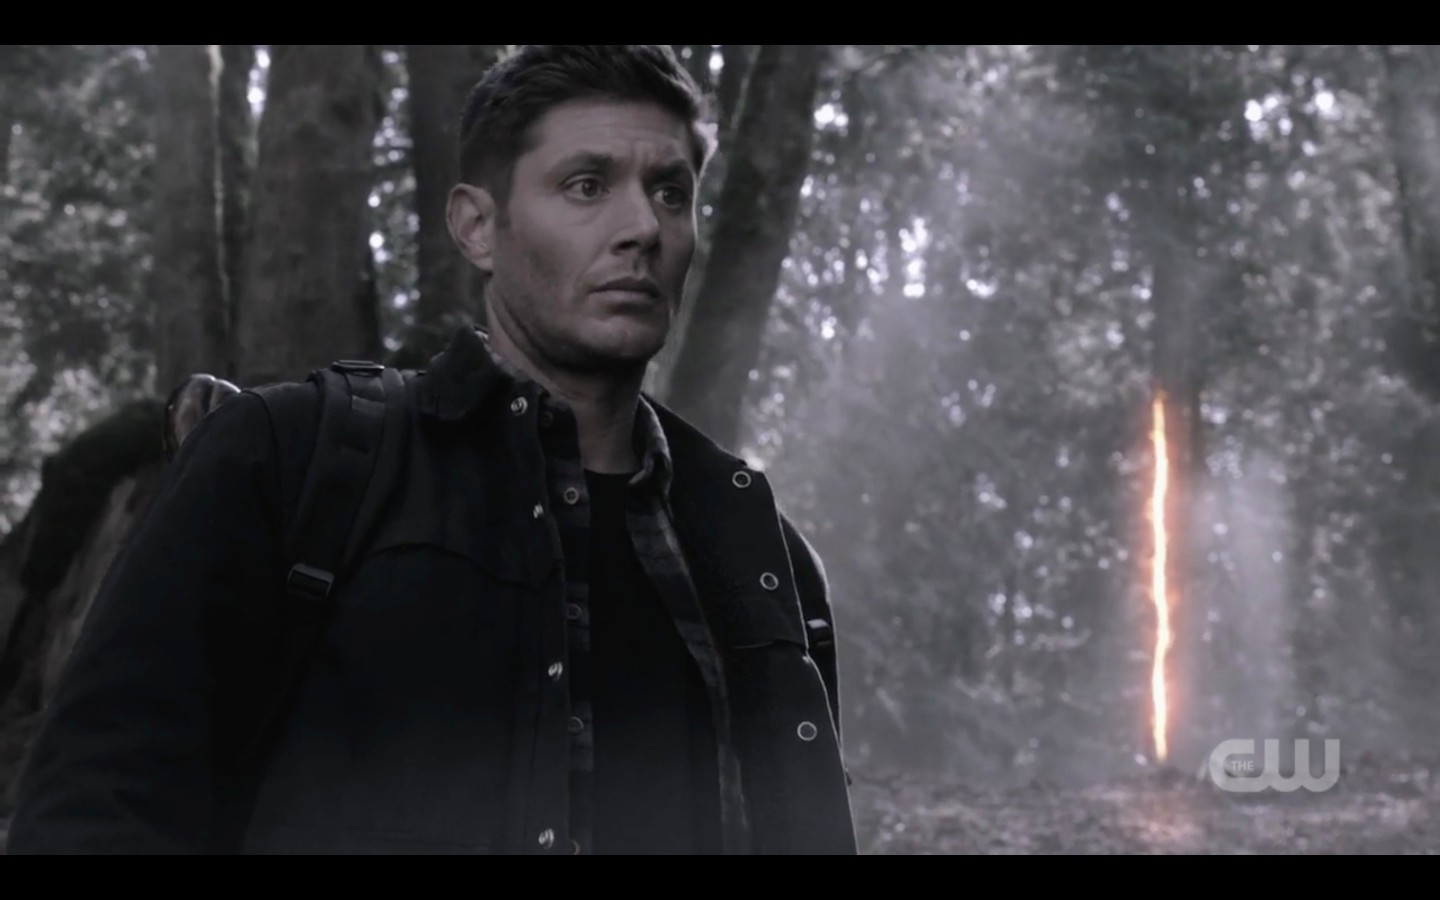 dean winchester in forest with worm hole beat the devil